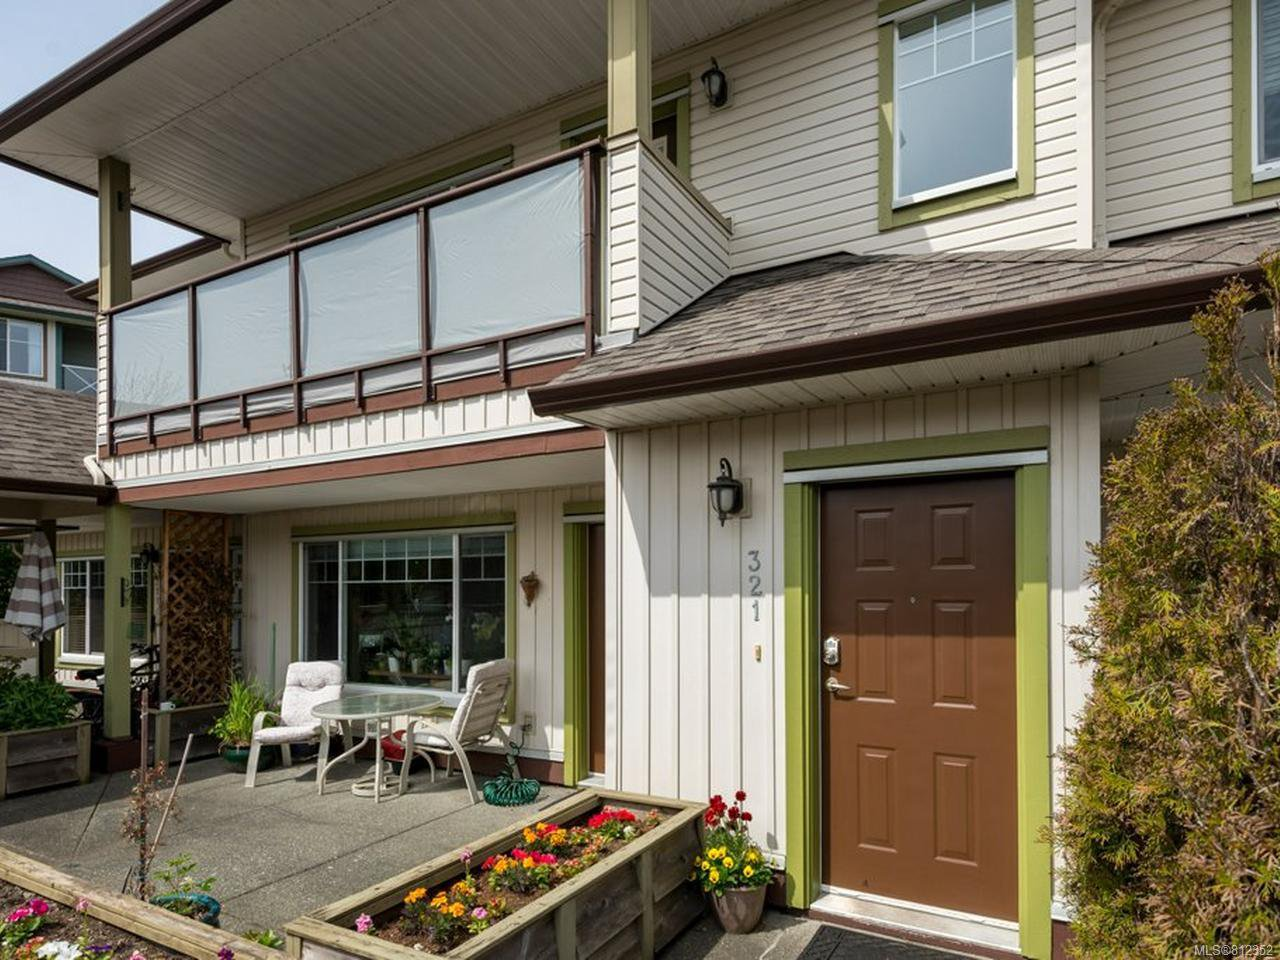 Main Photo: 321 930 BRAIDWOOD ROAD in COURTENAY: CV Courtenay East Row/Townhouse for sale (Comox Valley)  : MLS®# 812352